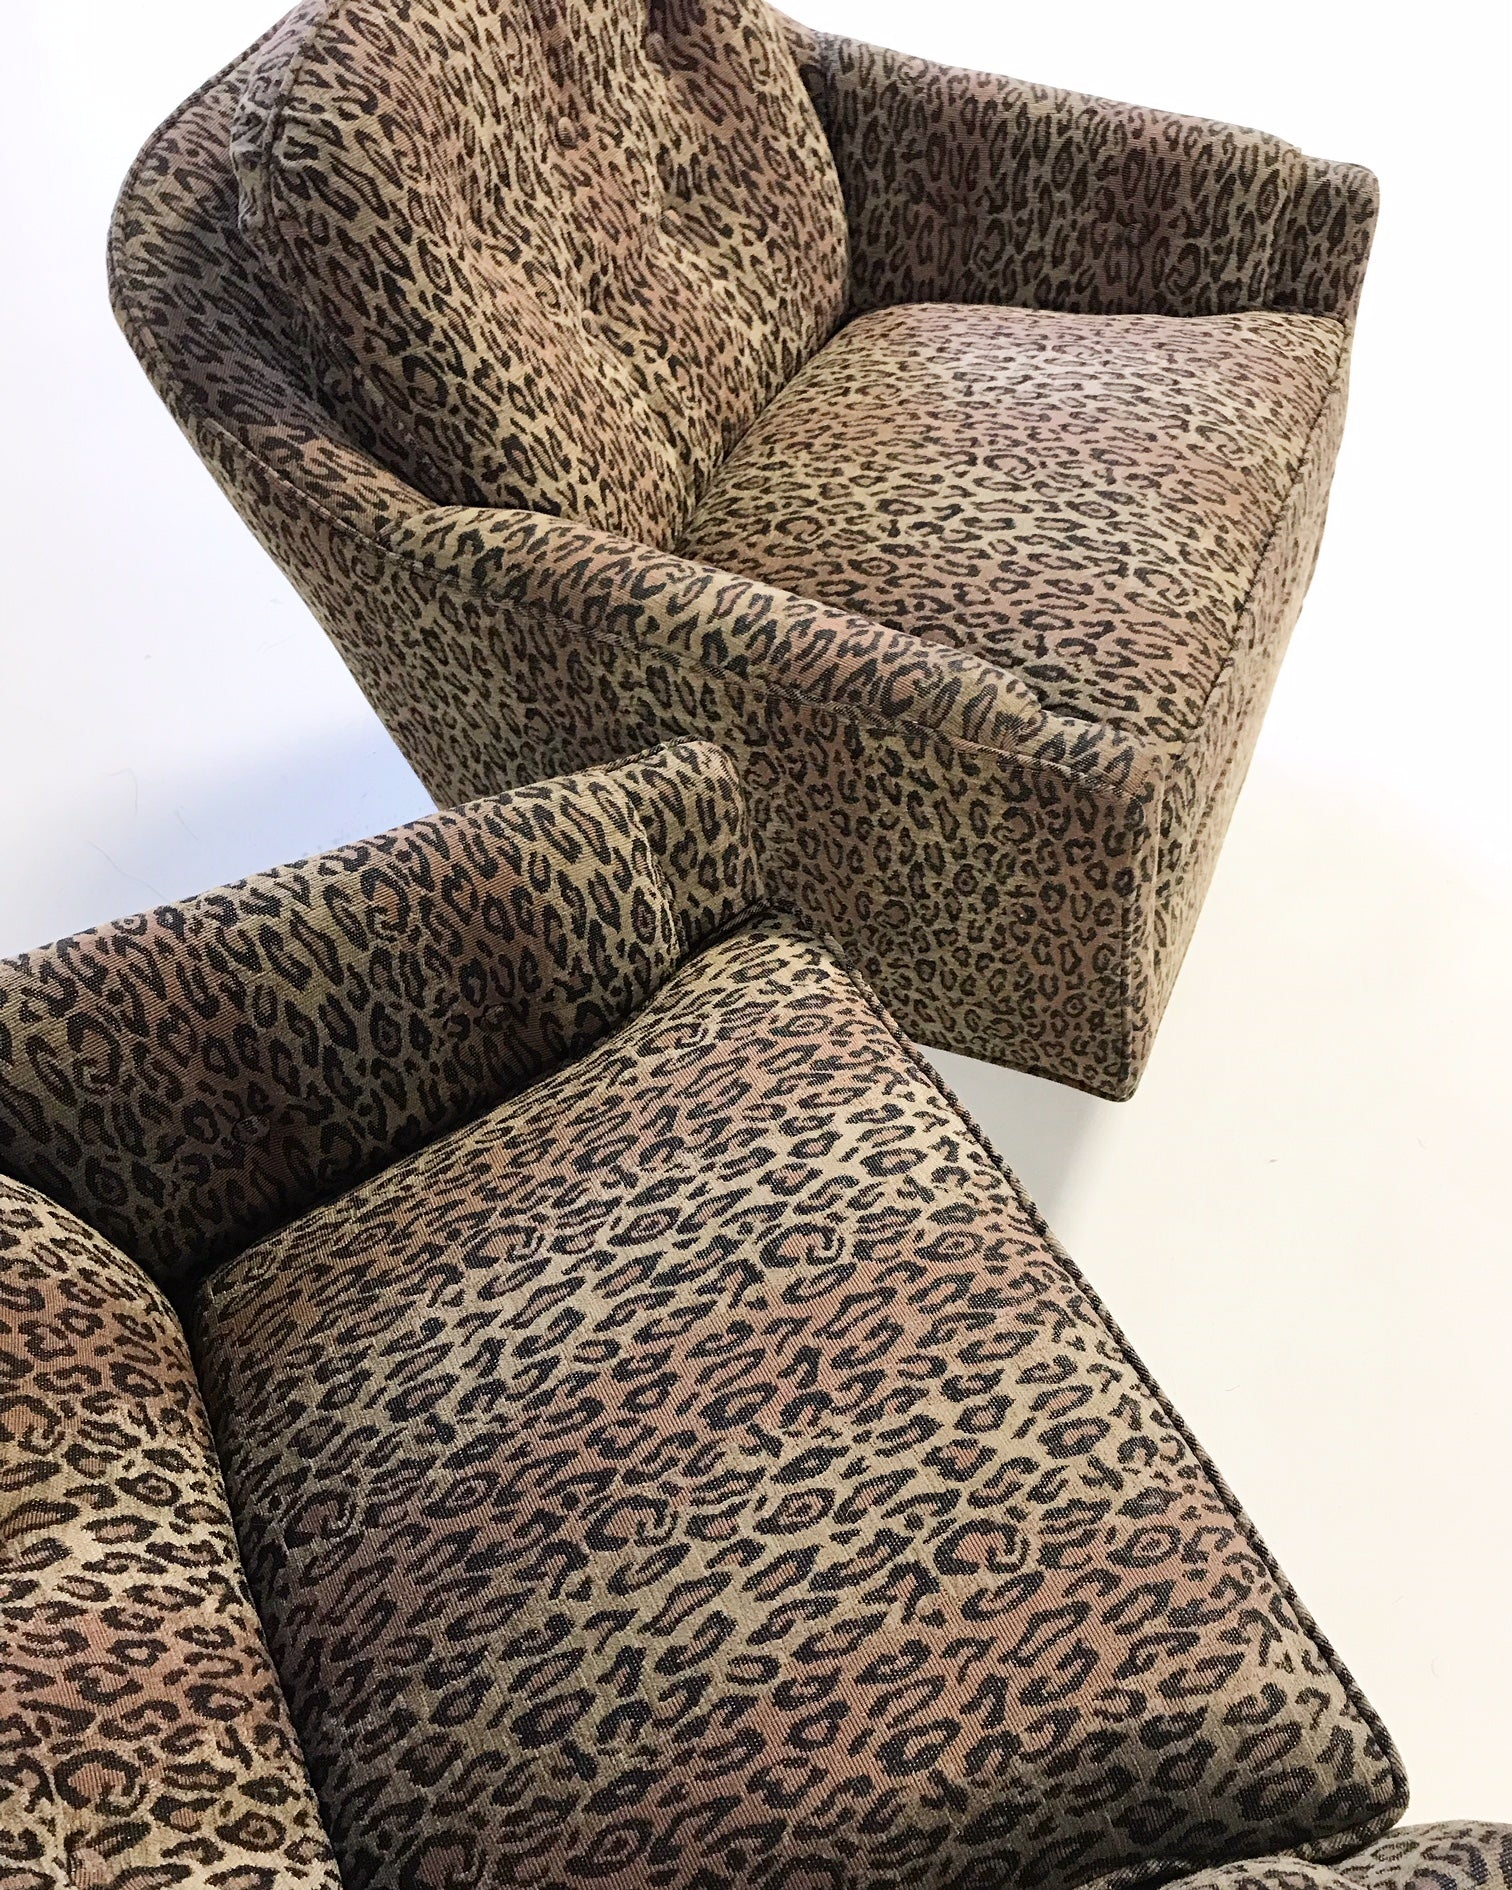 Lounge Chairs In Kravet Leopard Print Fabric Pair Forsyth